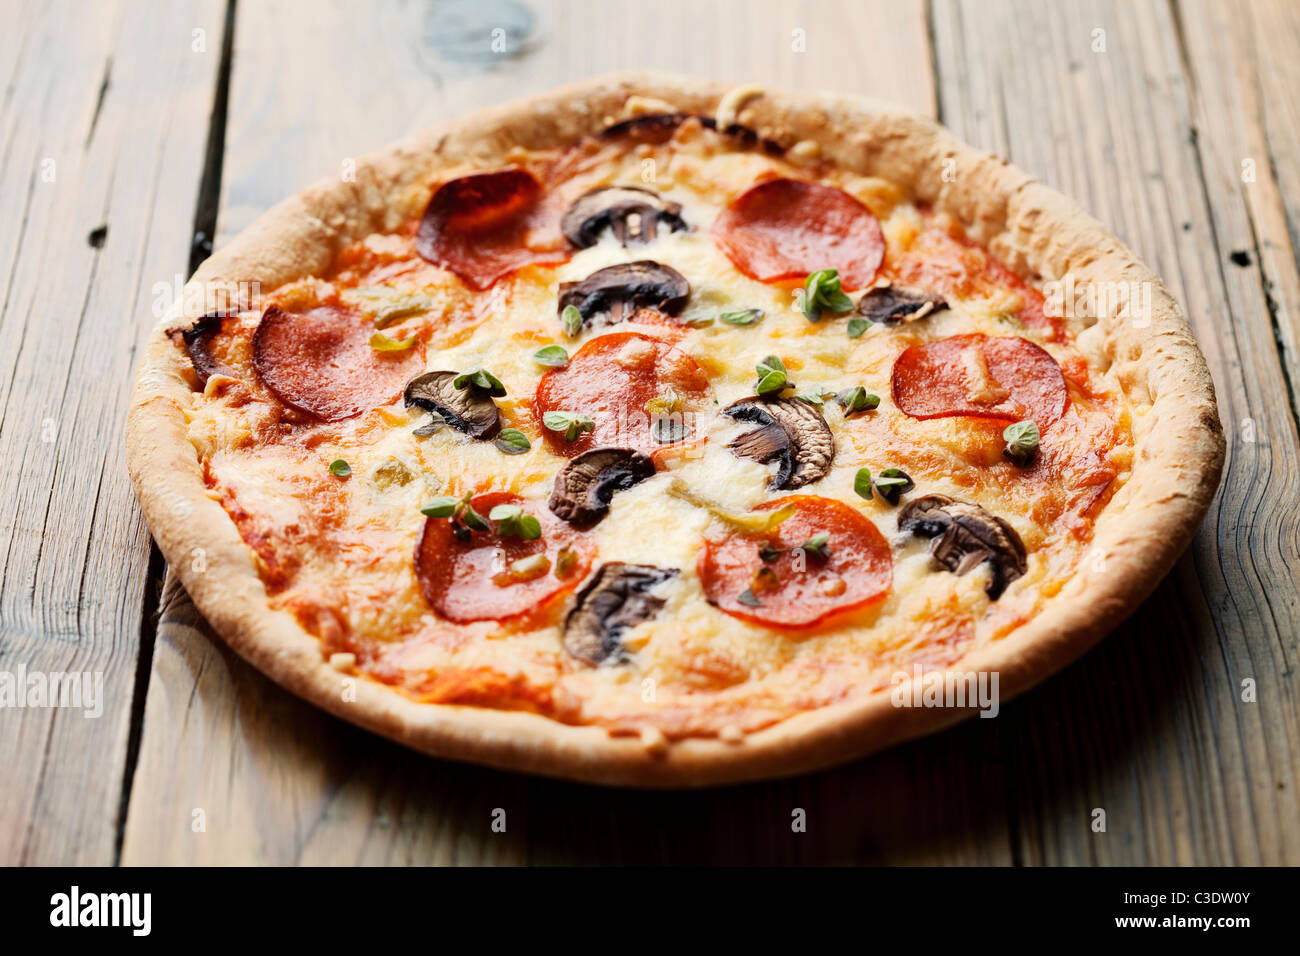 Pizza Pepperoni et mushrooom sur table rustique Photo Stock